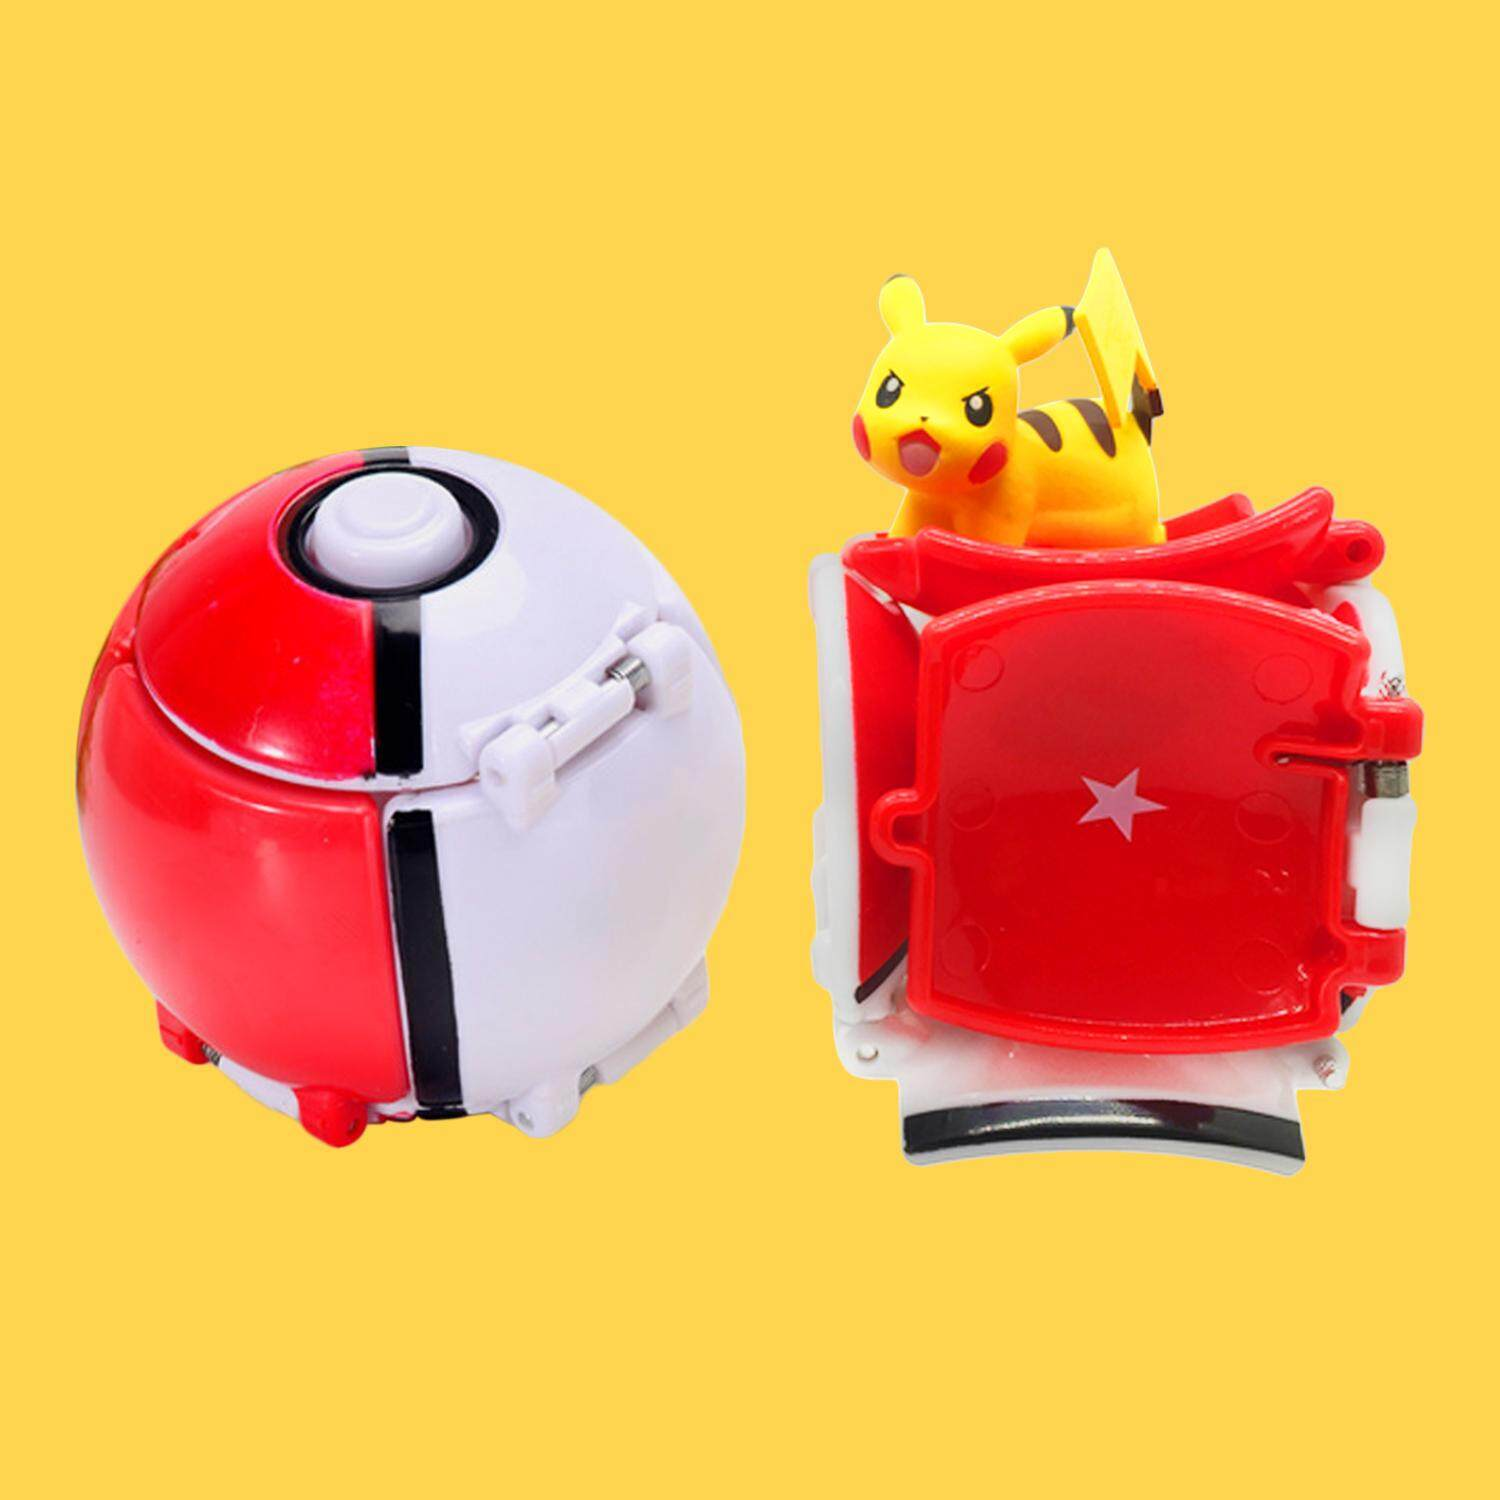 Kawaii Pokemon Throw N Pop Pikachu Automatically Bounce Pokeball Model Figure Toys (Red) - intl